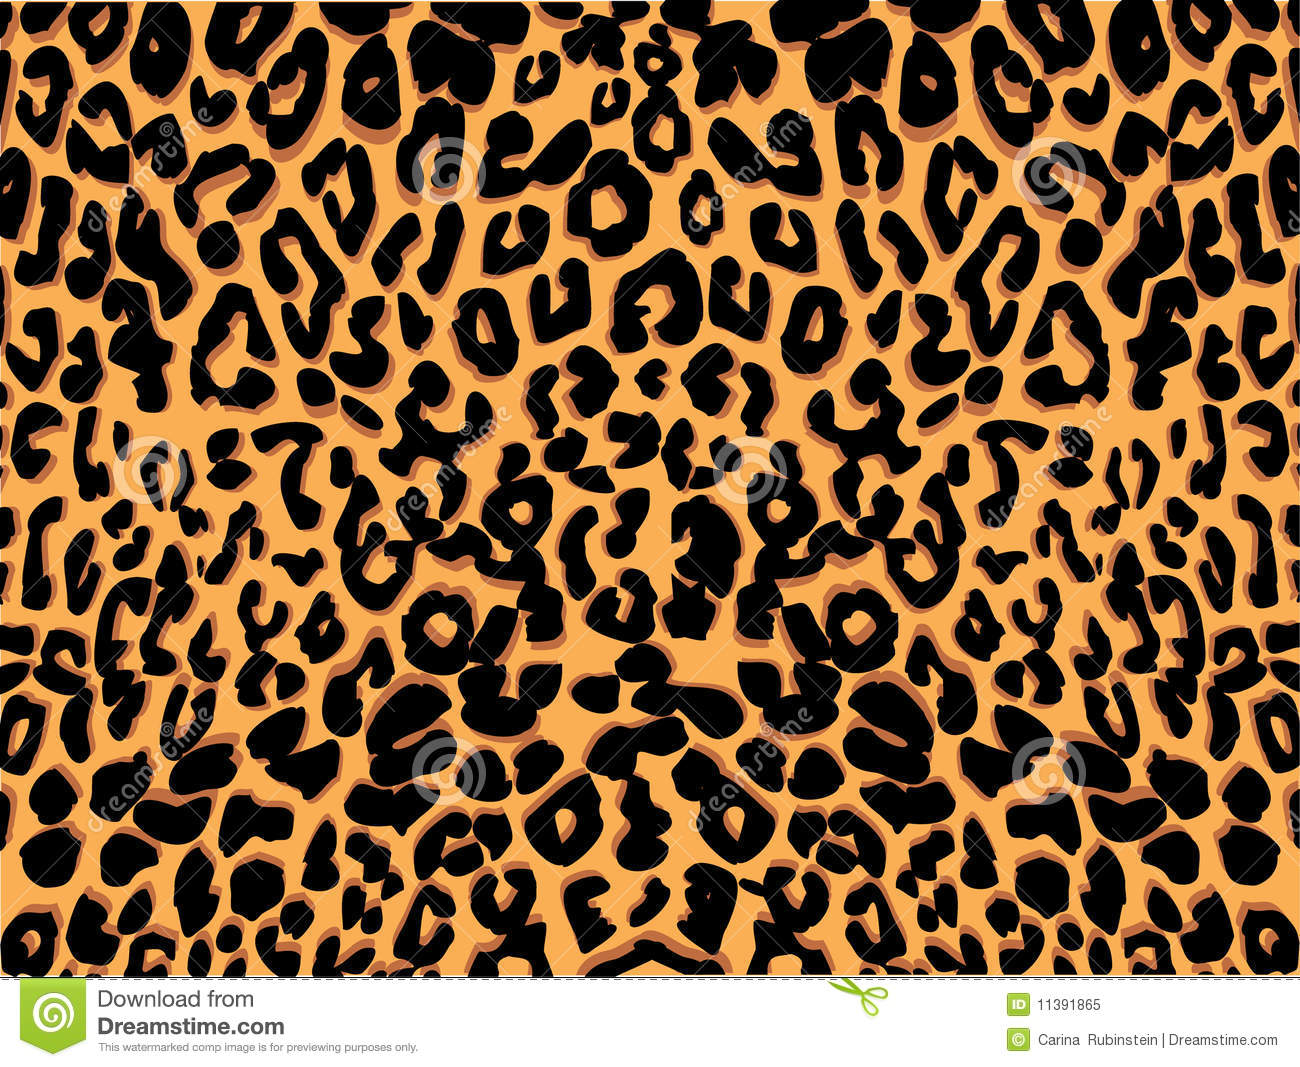 Animal print patterns clipart.